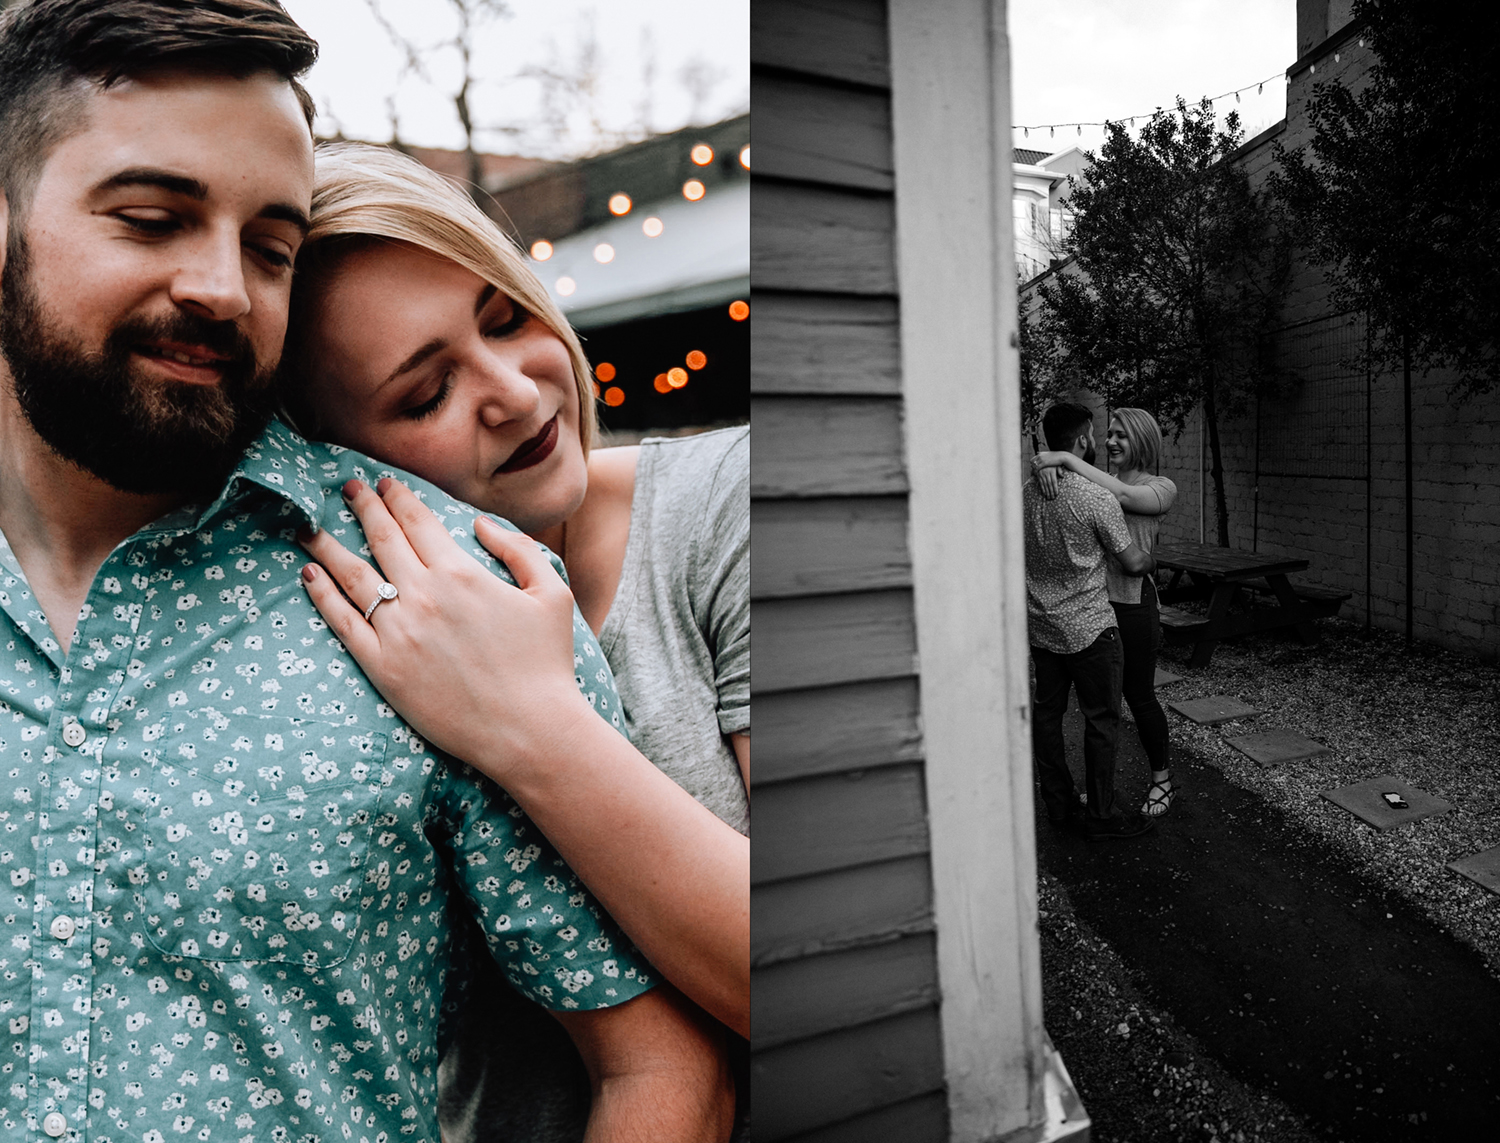 Cline_Decatur_Engagement5.jpg